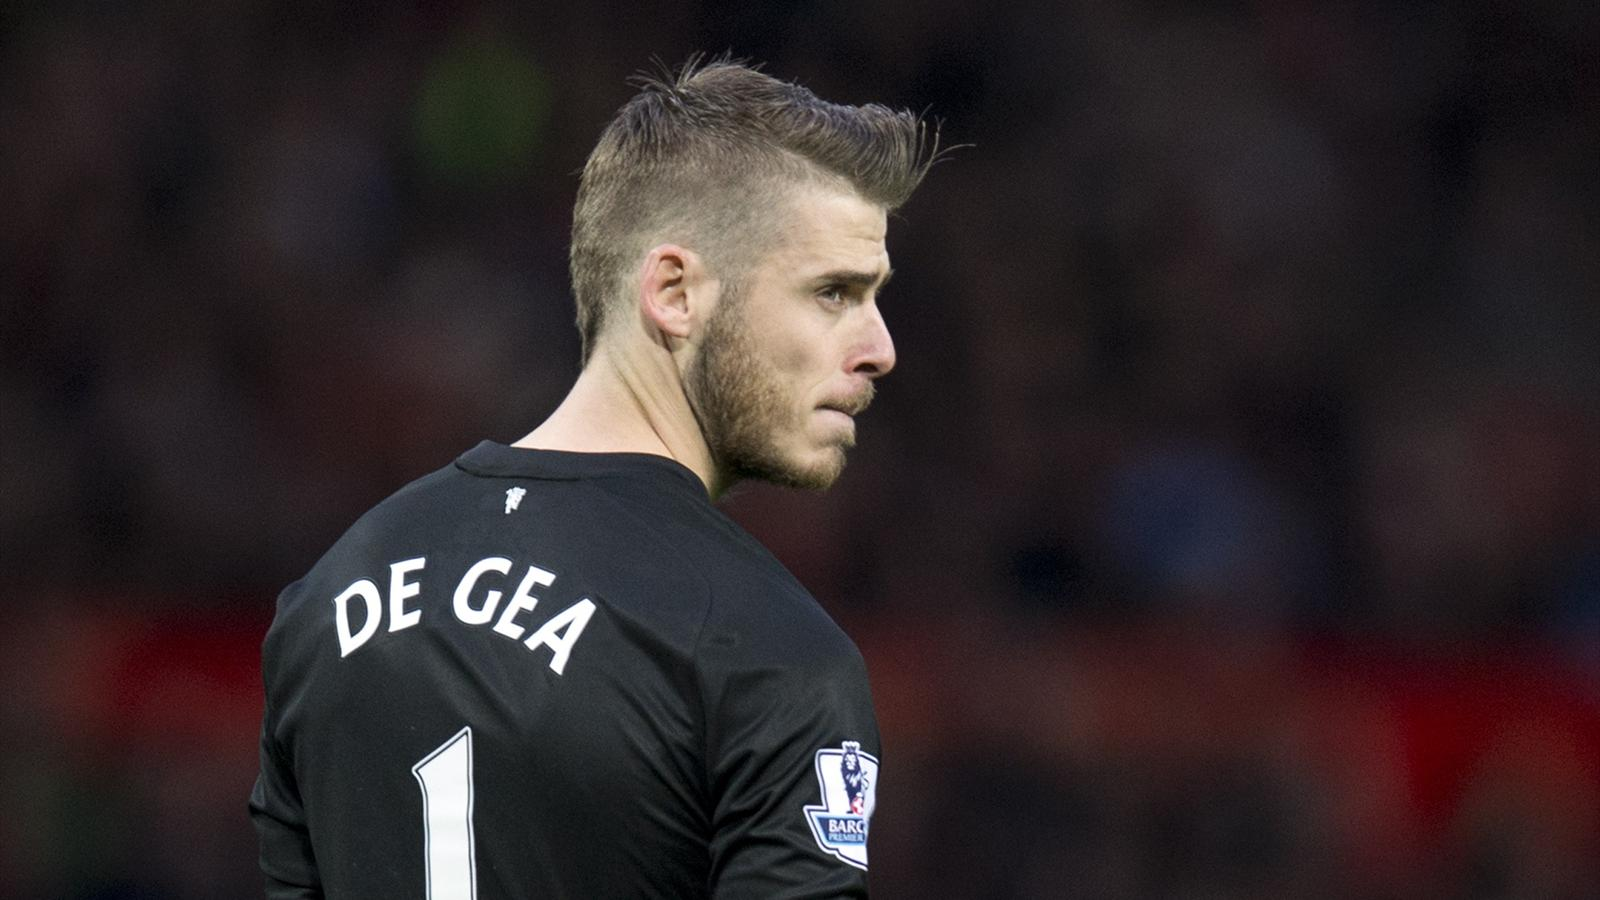 De Gea signs 4 years deal with Manchester United